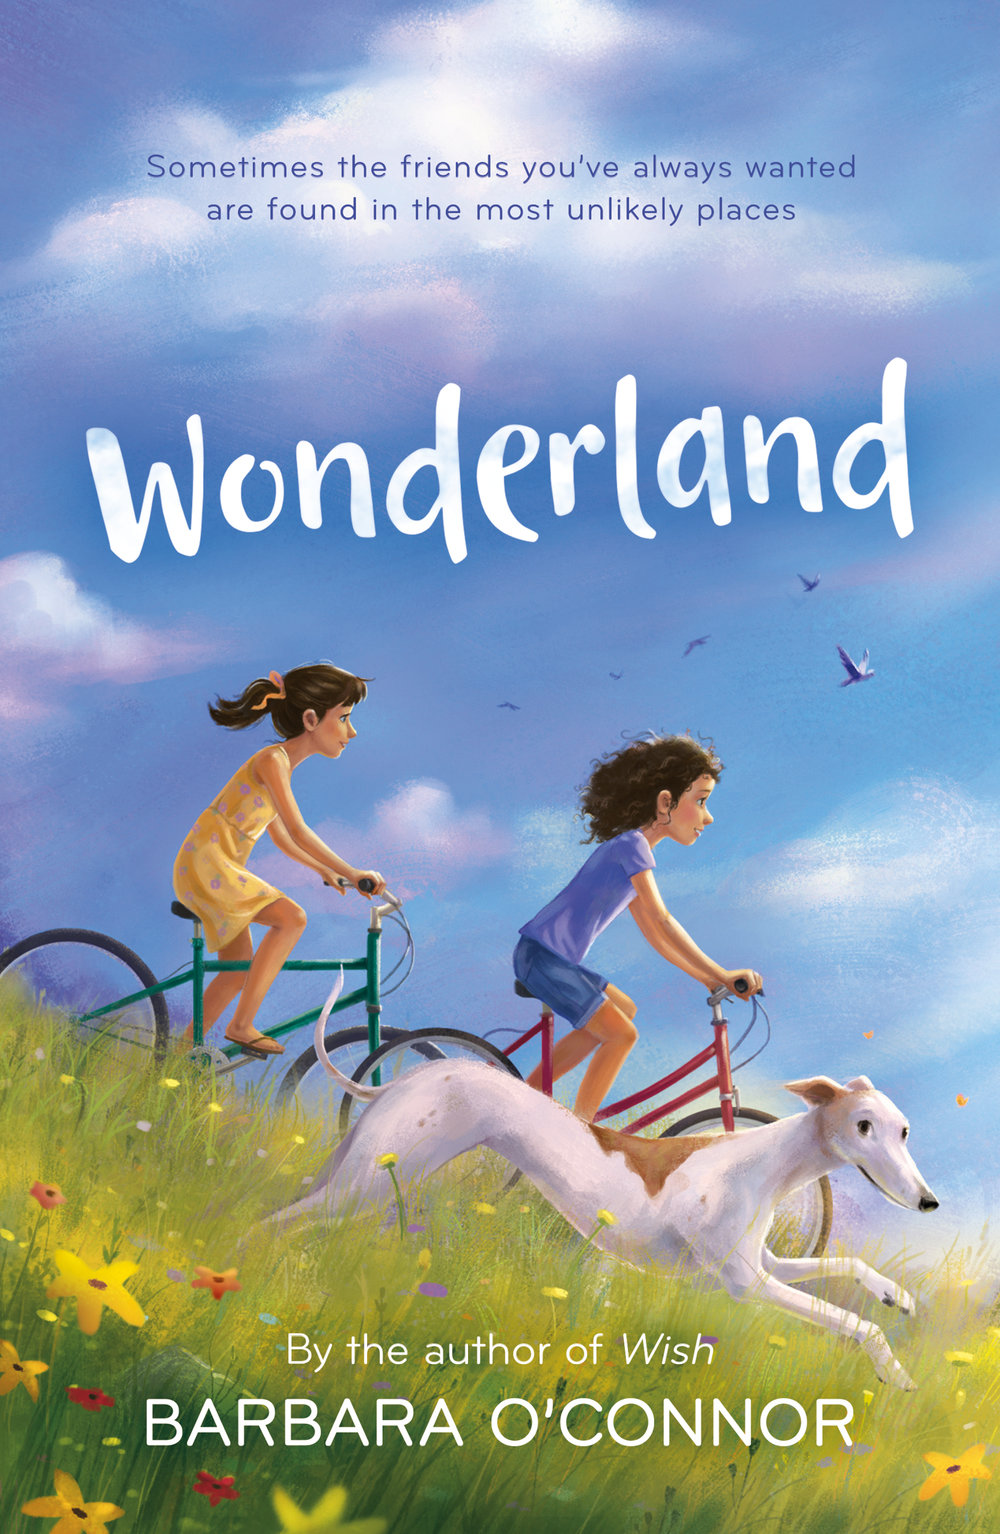 Wonderland, Barbara O'Connor For Farrar, Straus and Giroux BYR. Illustration by Jen Bricking.